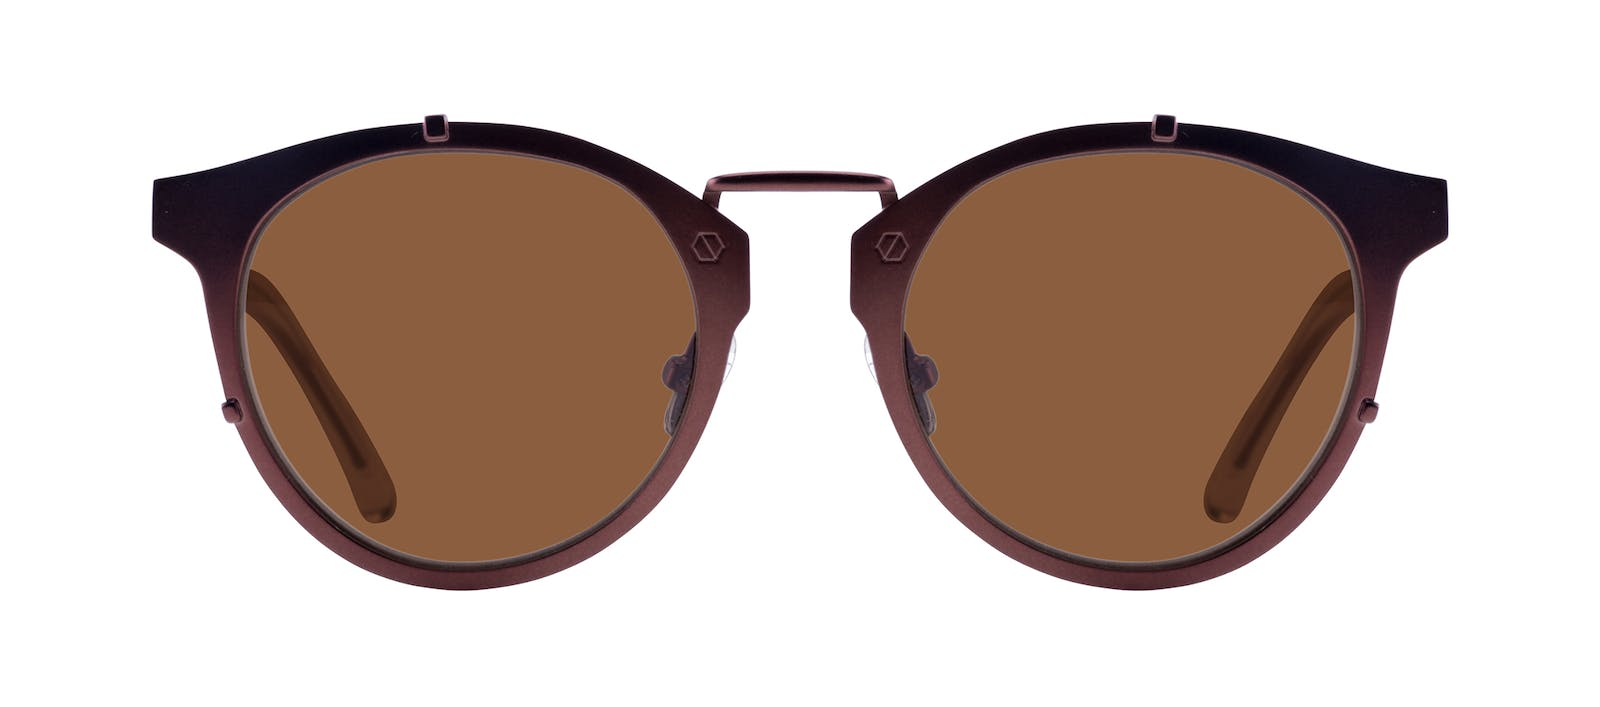 e0161867bd7 Affordable Fashion Glasses Round Sunglasses Men Way Mud Front